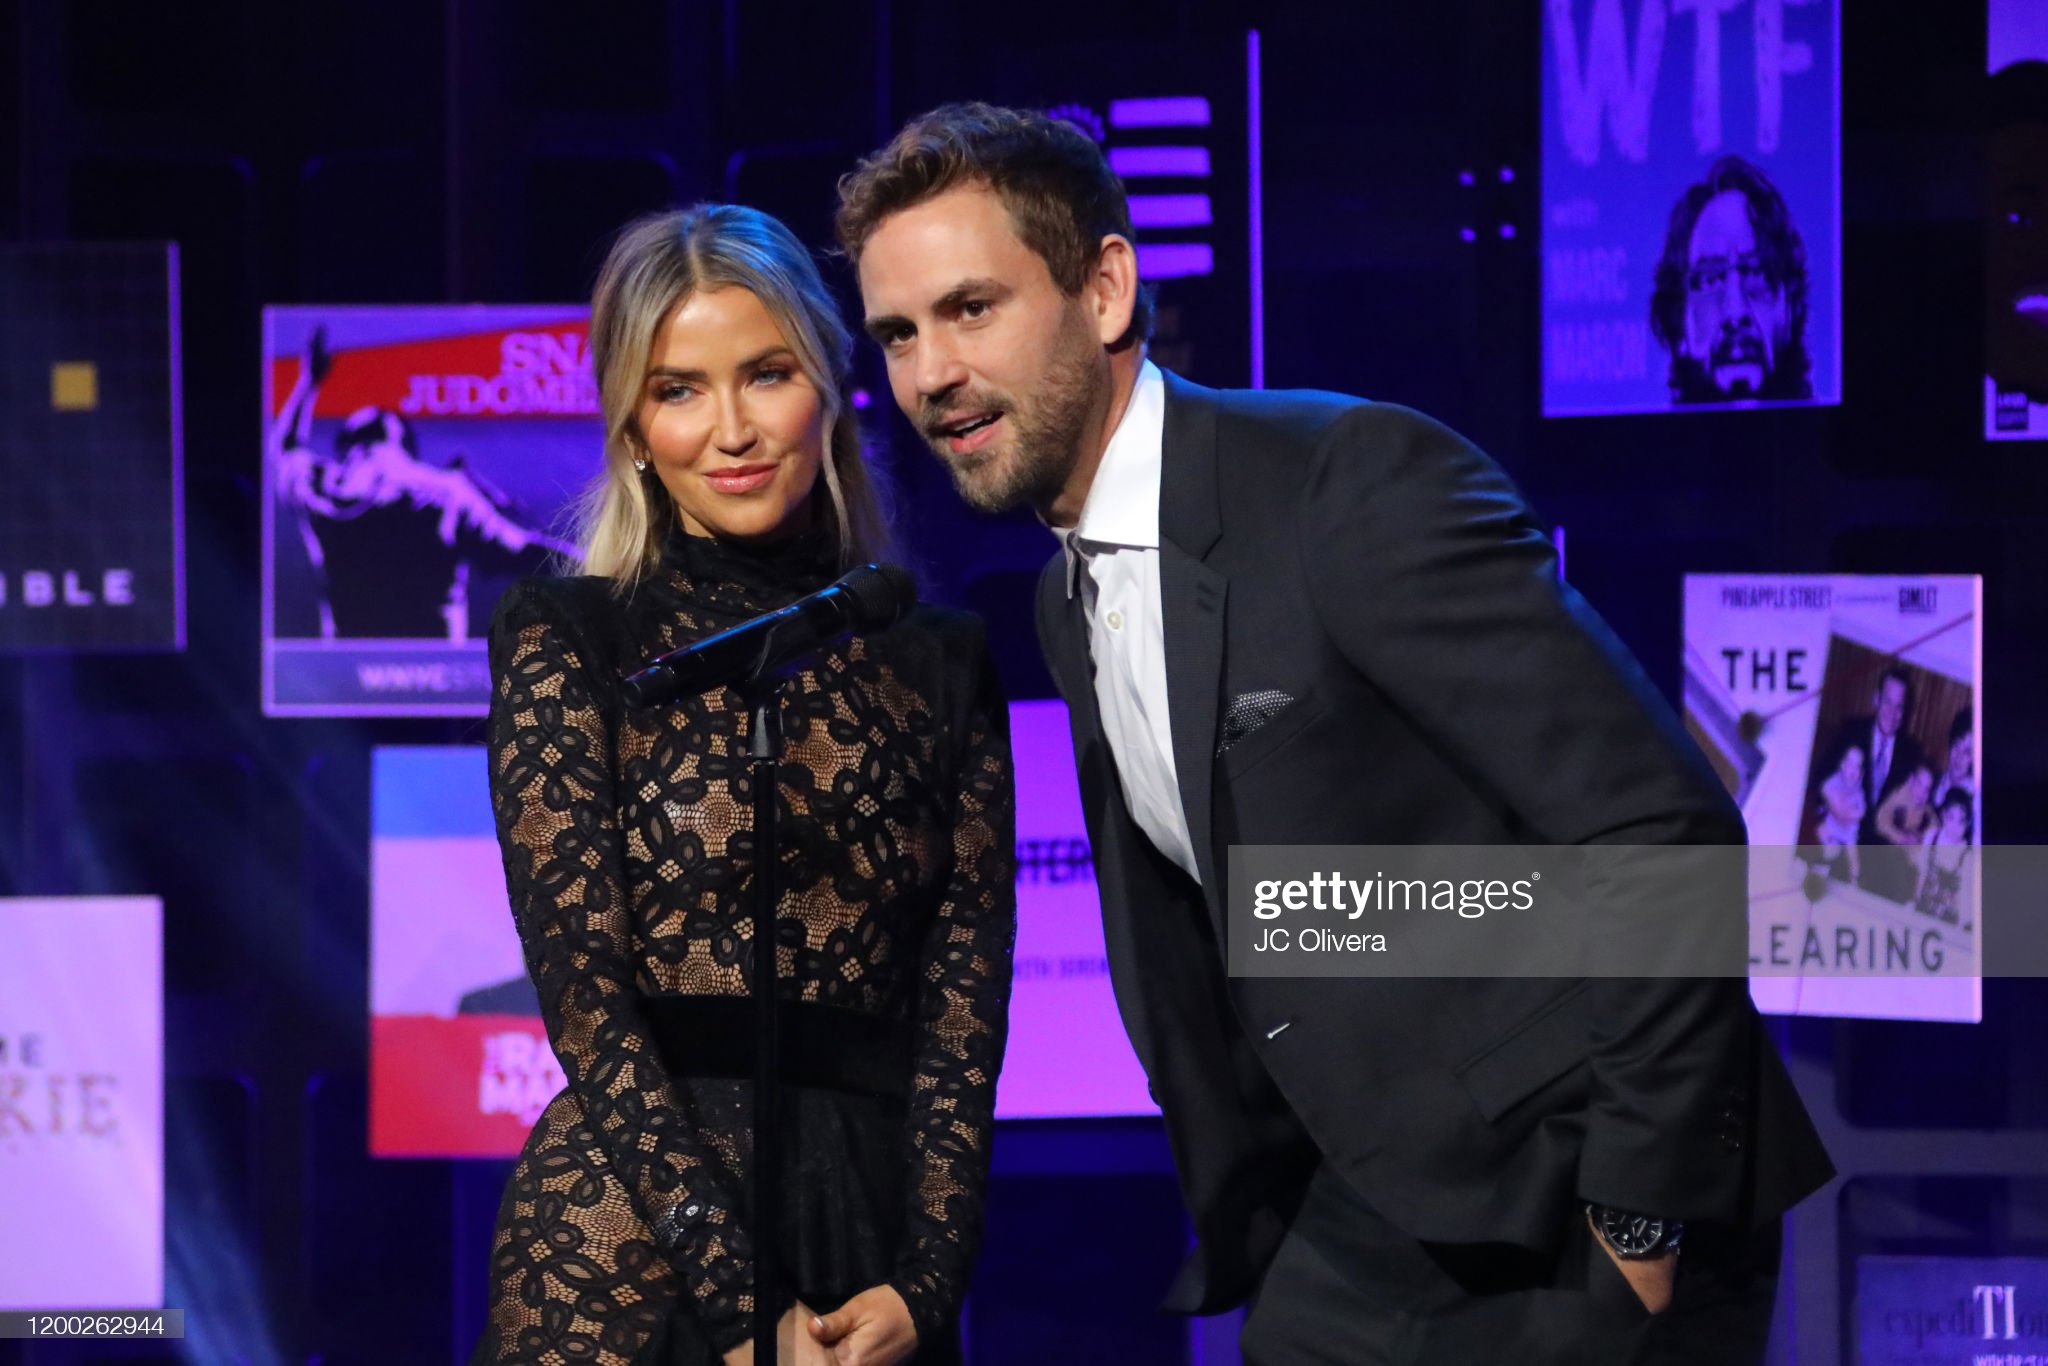 Kaitlyn Bristowe - Jason Tartick - FAN Forum - Discussion  - Page 51 Kaitlyn-bristowe-and-nick-viall-speak-onstage-during-the-2020-at-picture-id1200262944?s=2048x2048